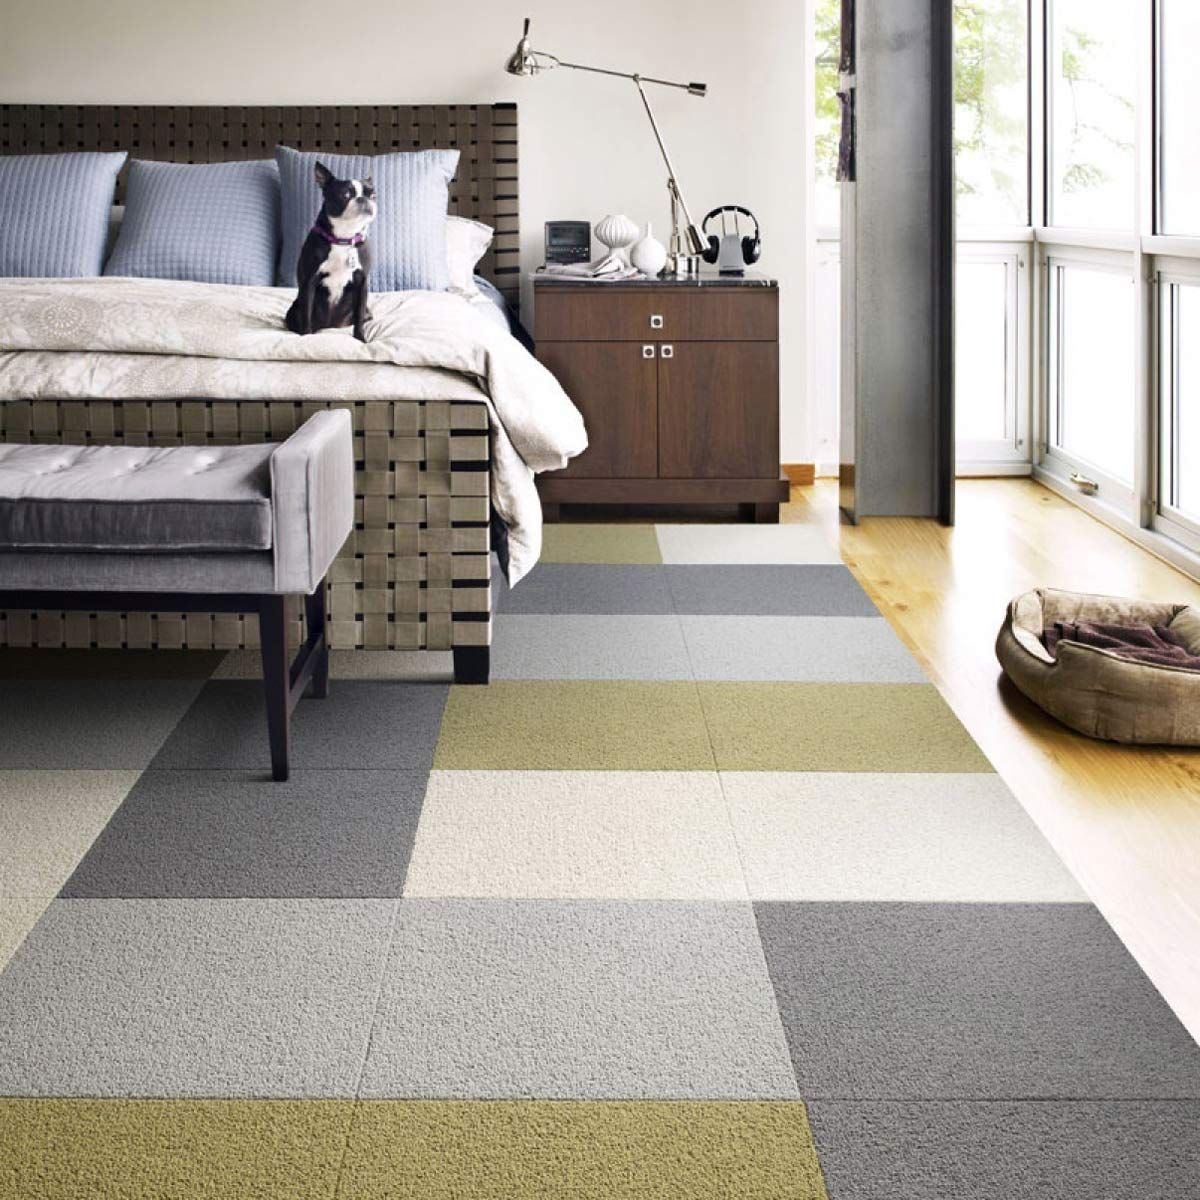 12 Flooring Trends For 2018 Carpet Tiles Design Bedroom Carpet Carpet Design